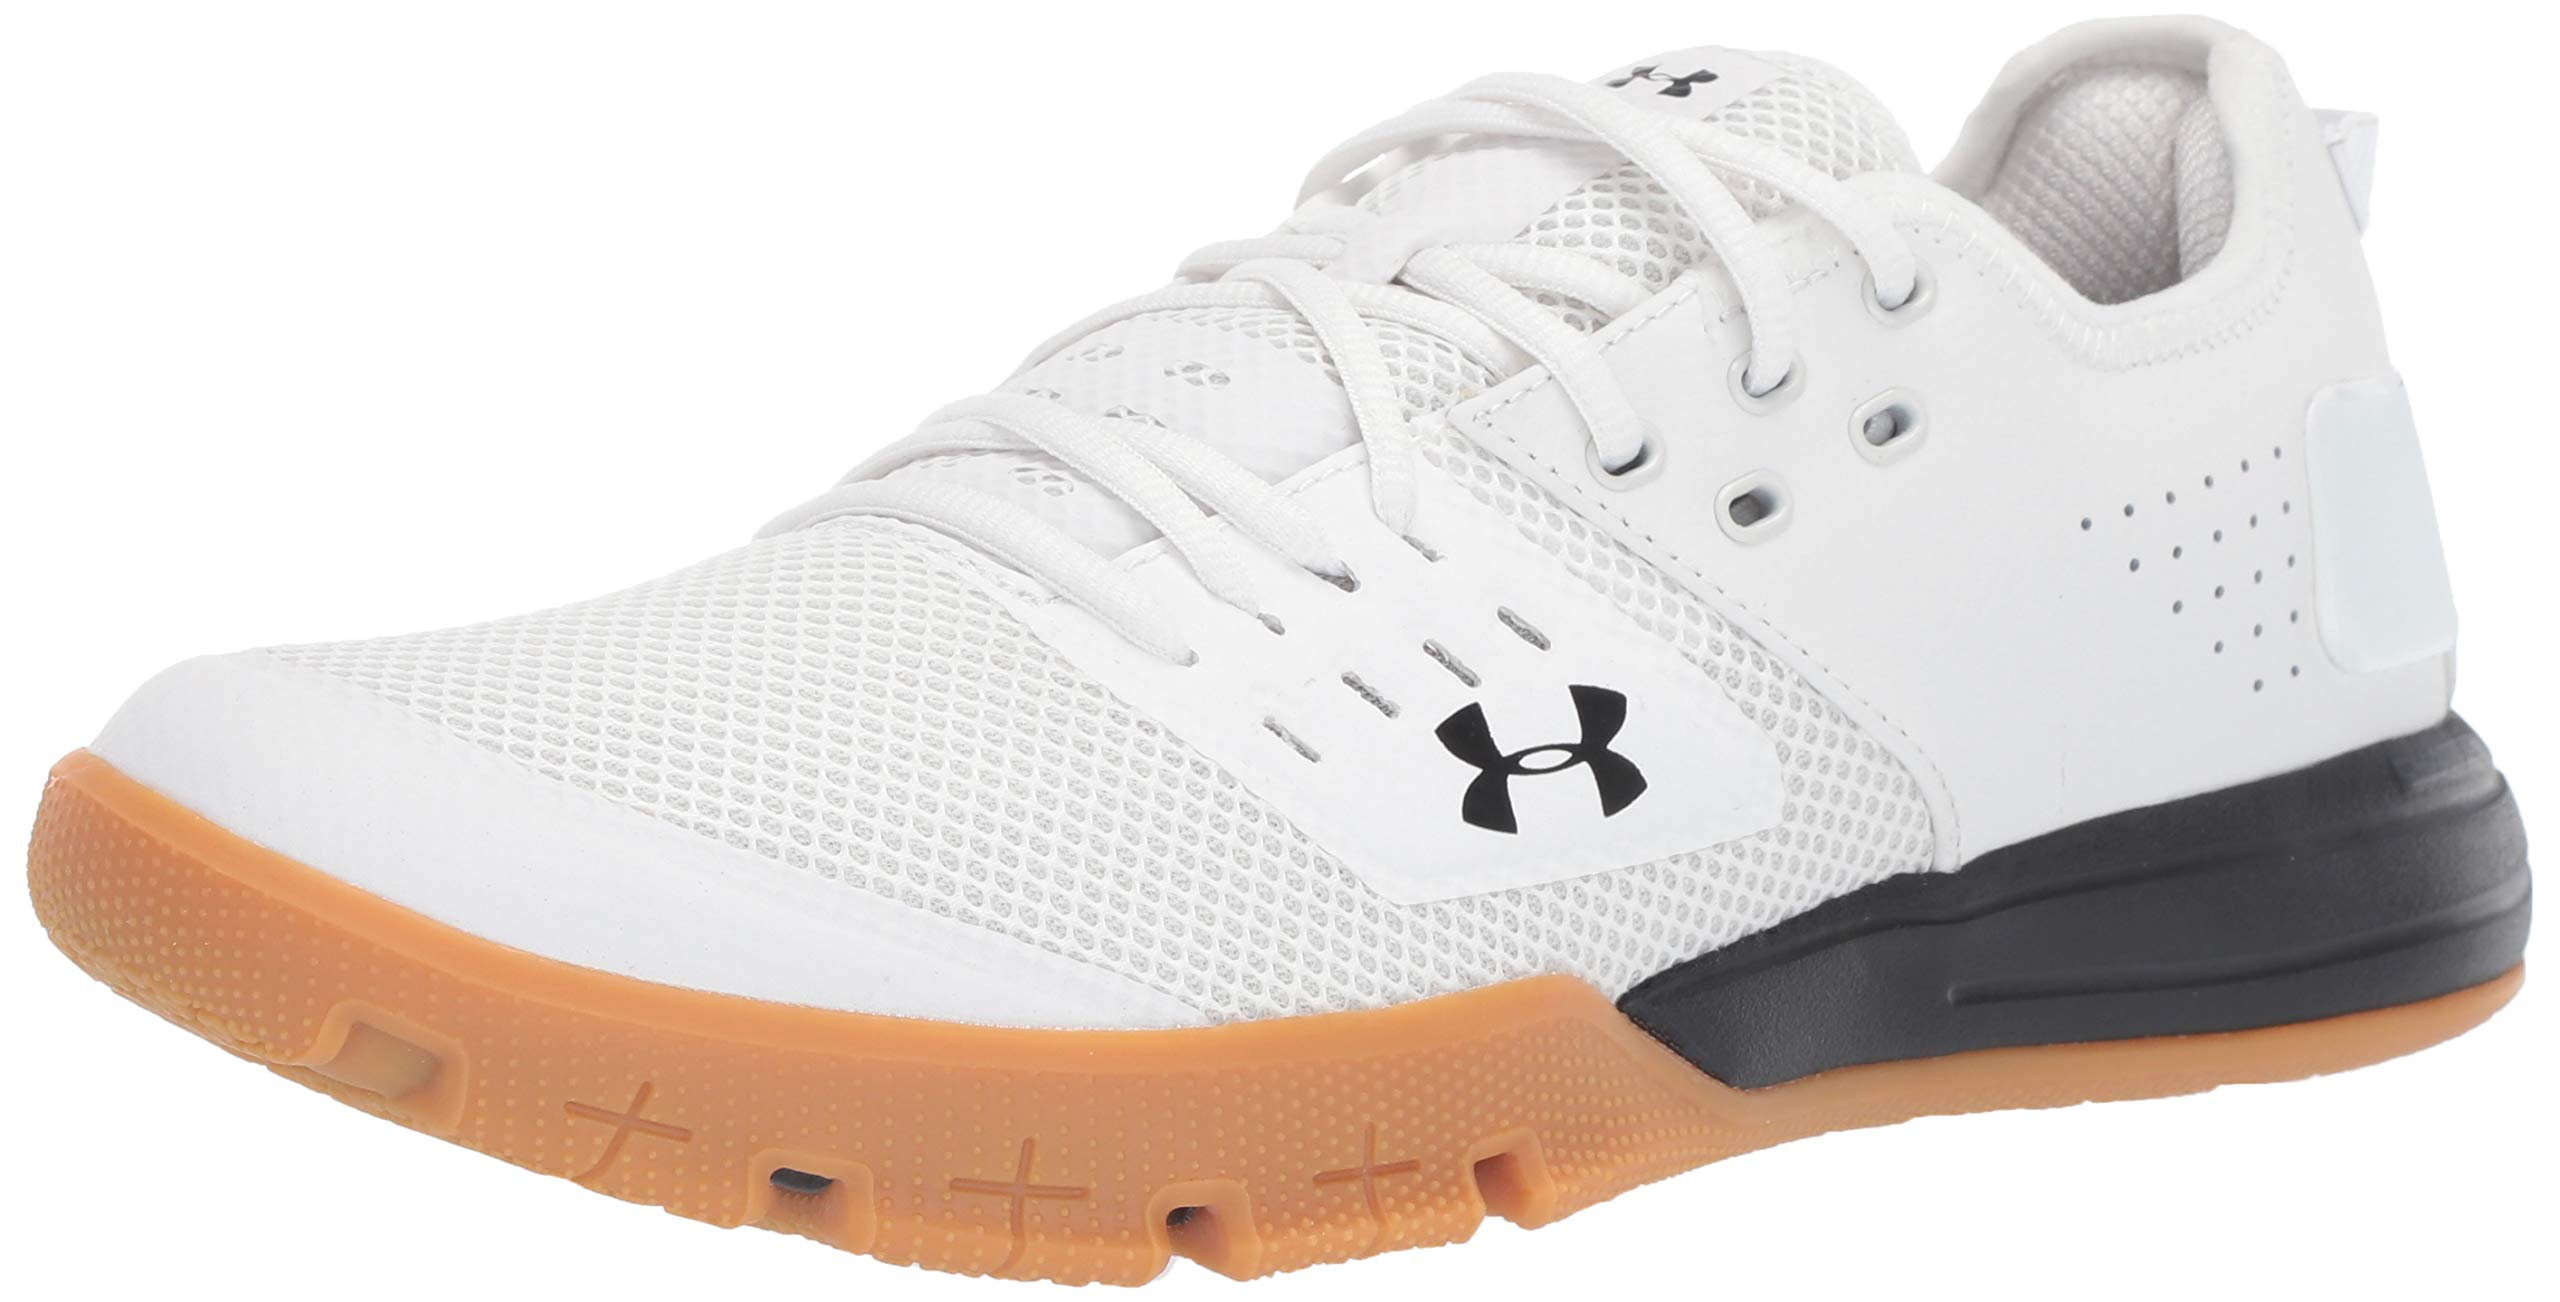 Under Armour 男式 Ua Charged Ultimate 3.0 健身鞋